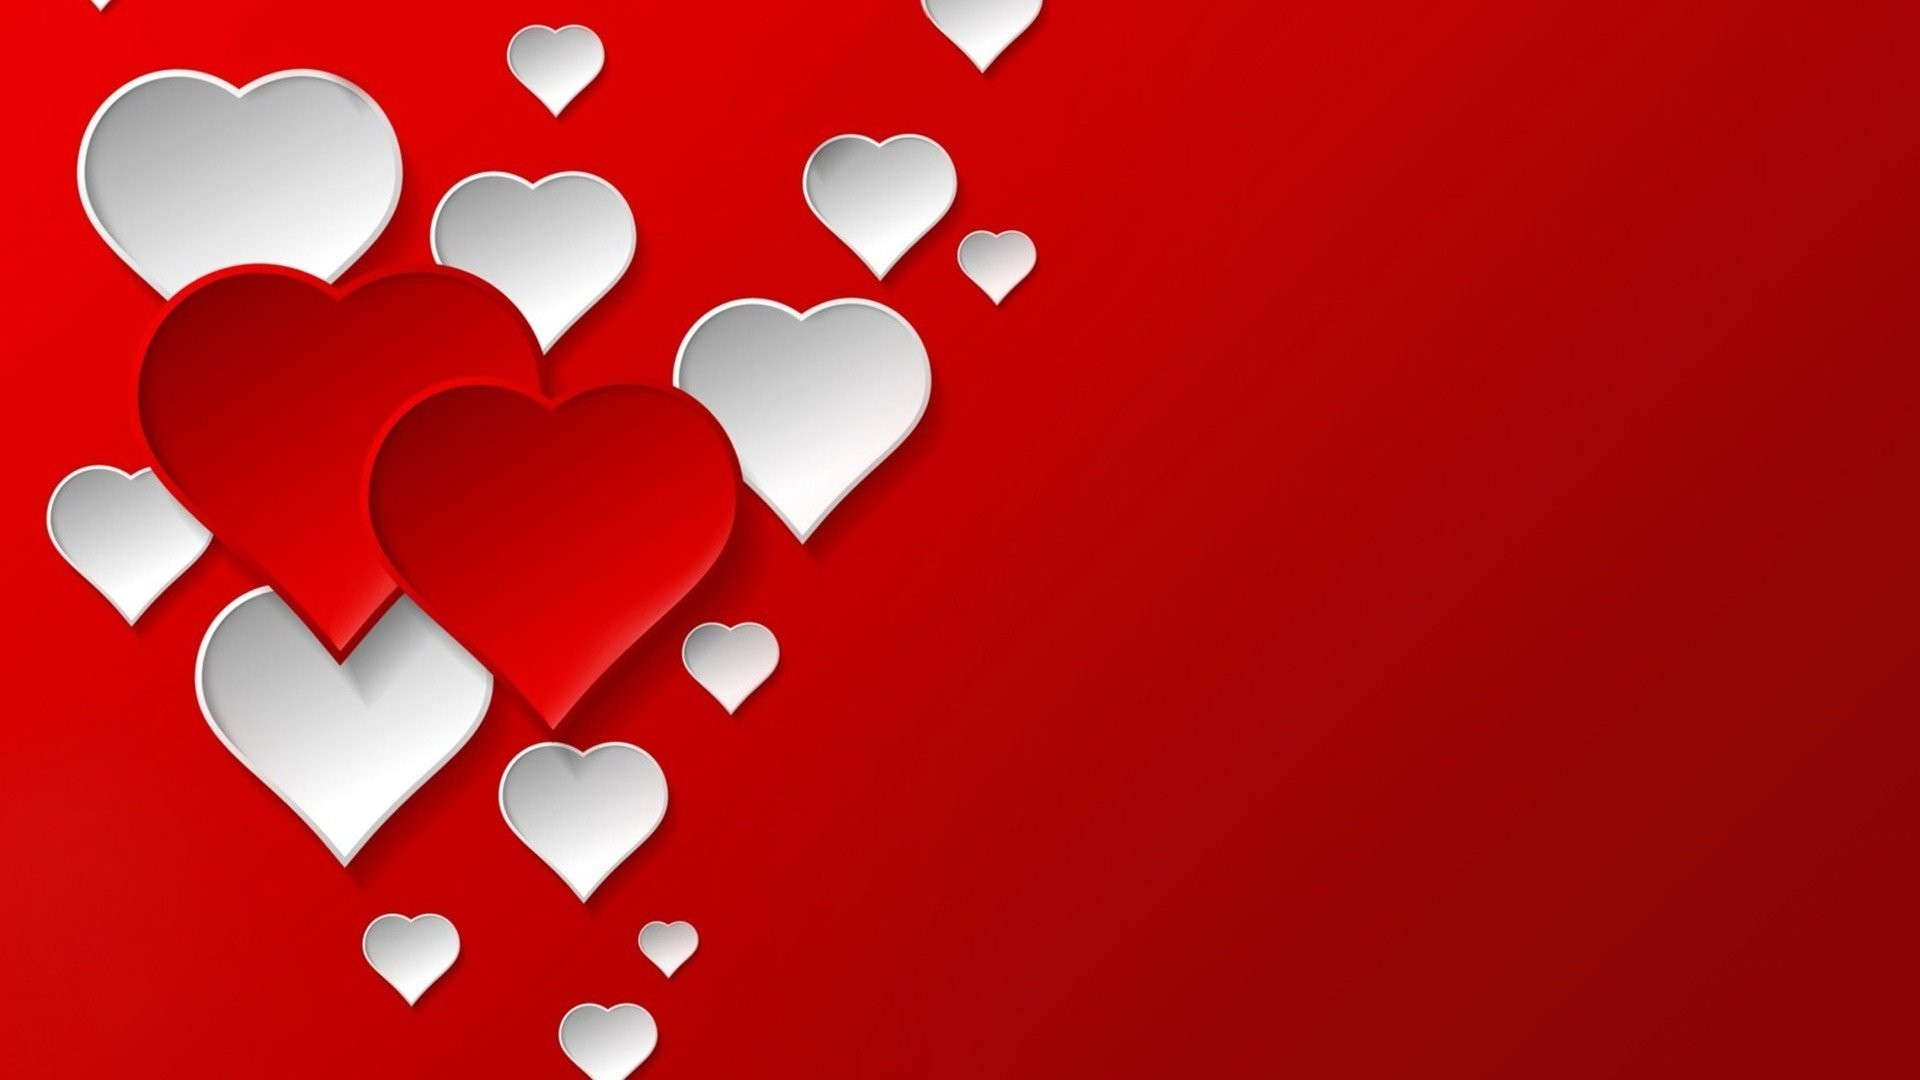 1920x1080 Broken Heart Wallpapers Wallpaper 1920×1080 Heart Pics Wallpapers (34  Wallpapers) | Adorable